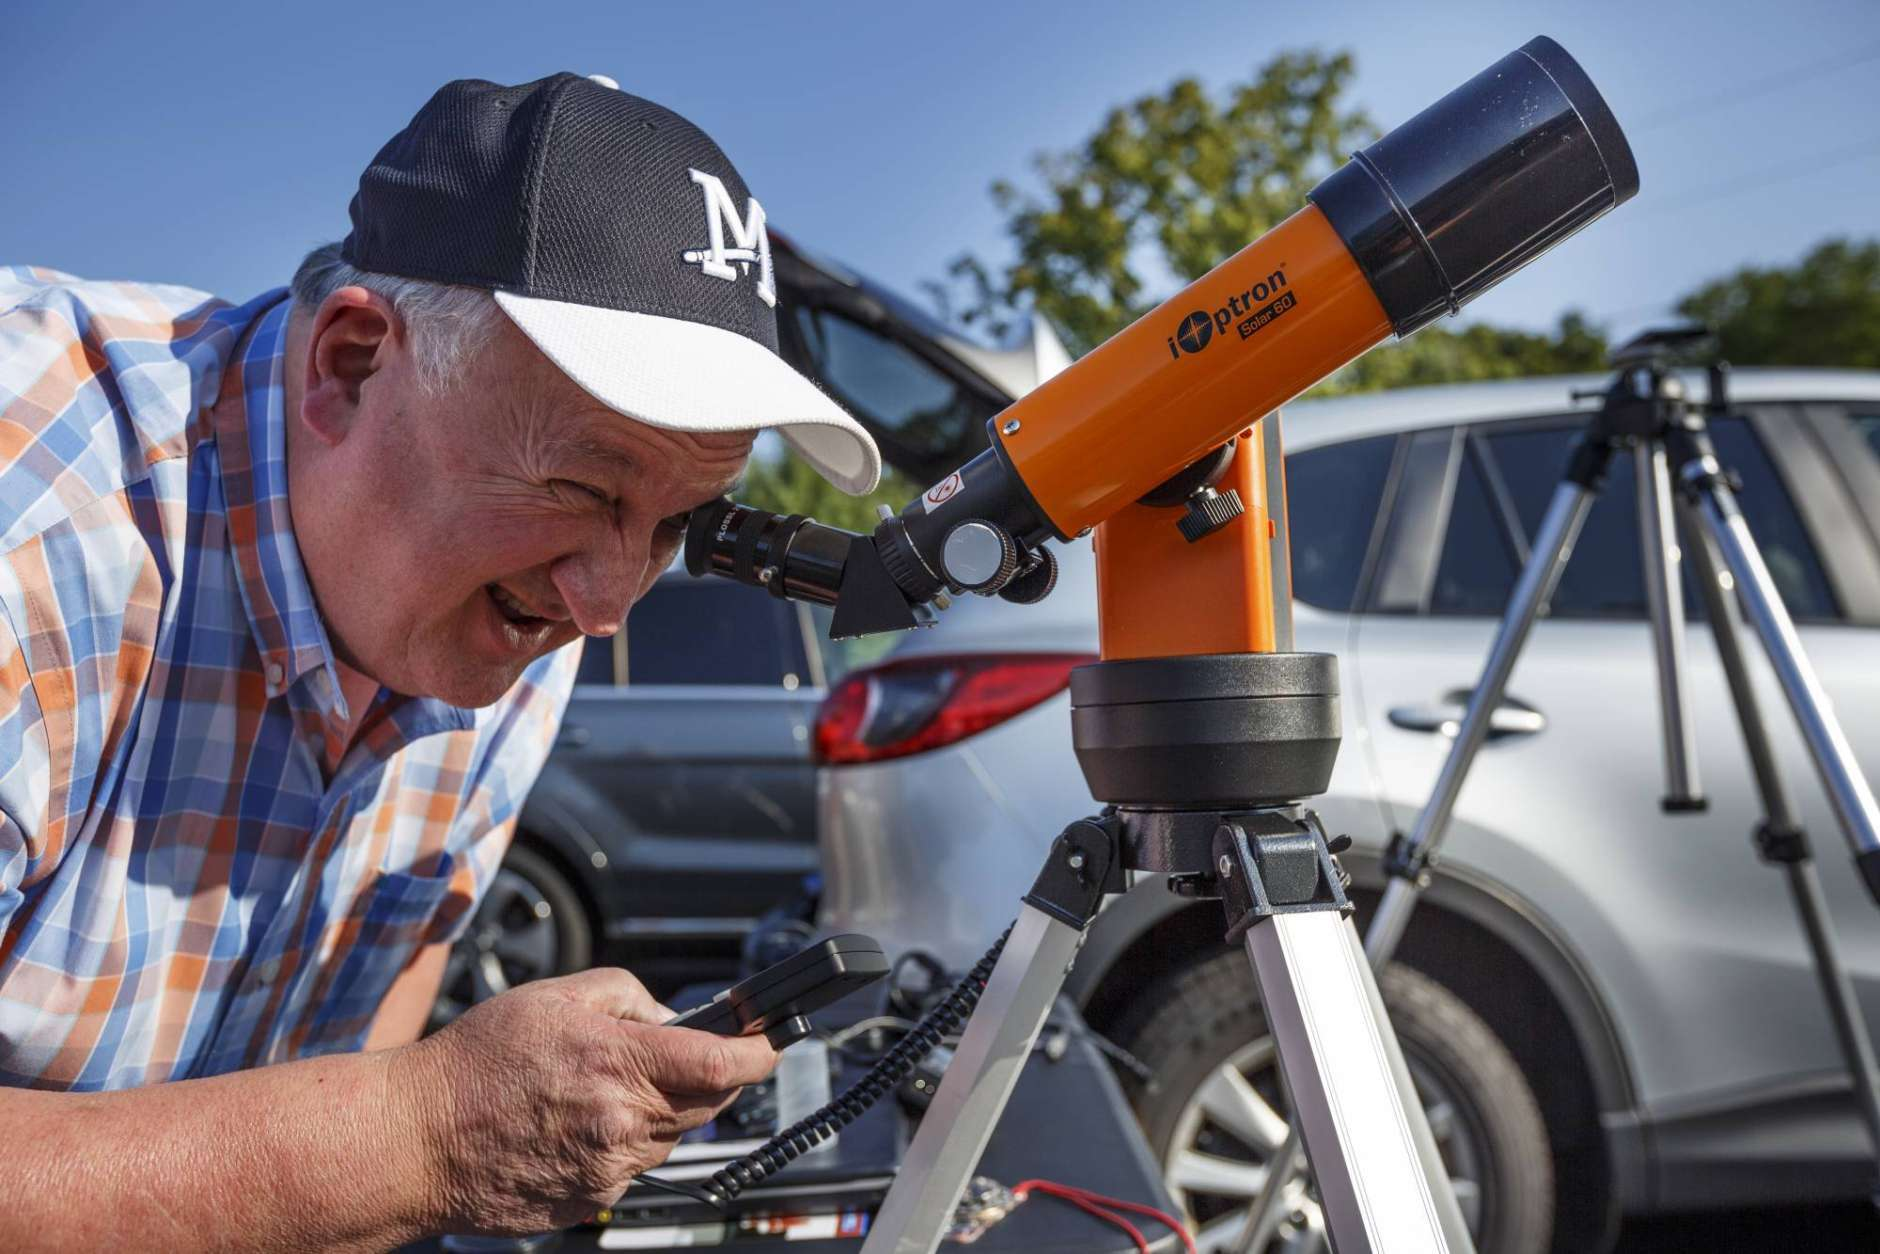 Tim Lucas looks through a telescope as he gets ready to view the total solar eclipse on Monday, Aug. 21, 2017, in Spring City, Tenn. (Doug Strickland/Chattanooga Times Free Press via AP)